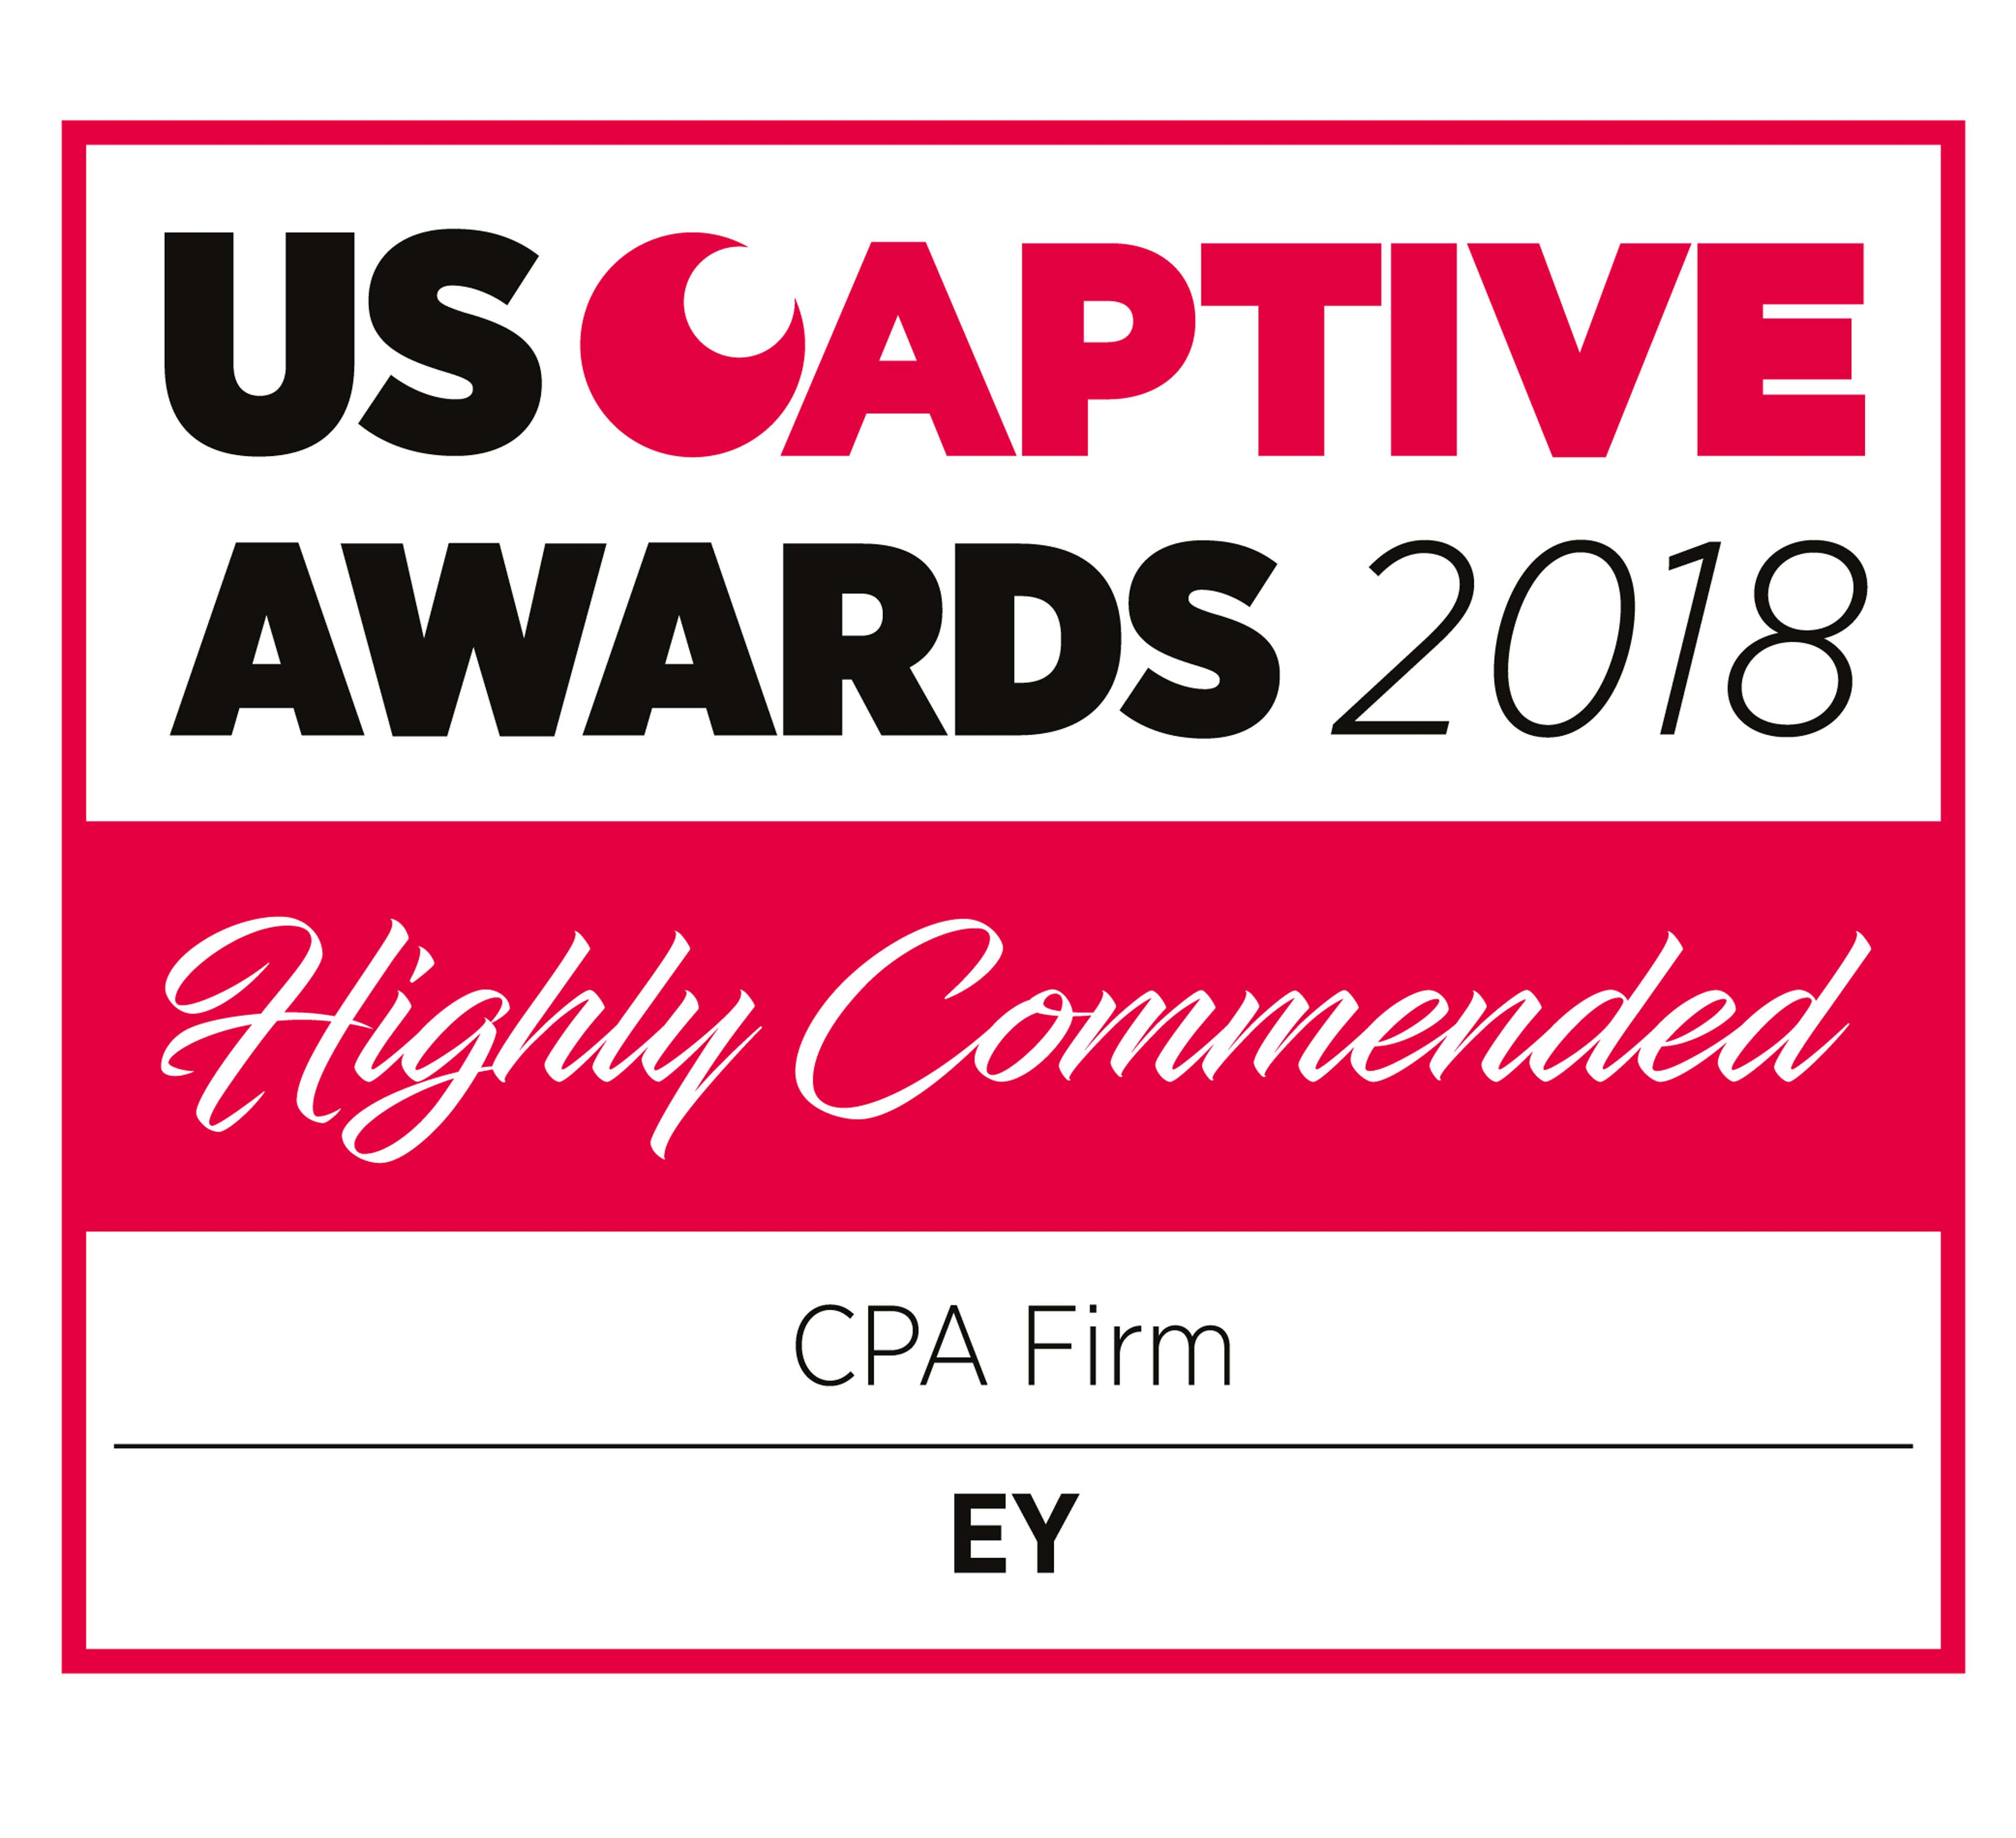 US Captive Awards 2018 Highly Commended CPA Firm EY